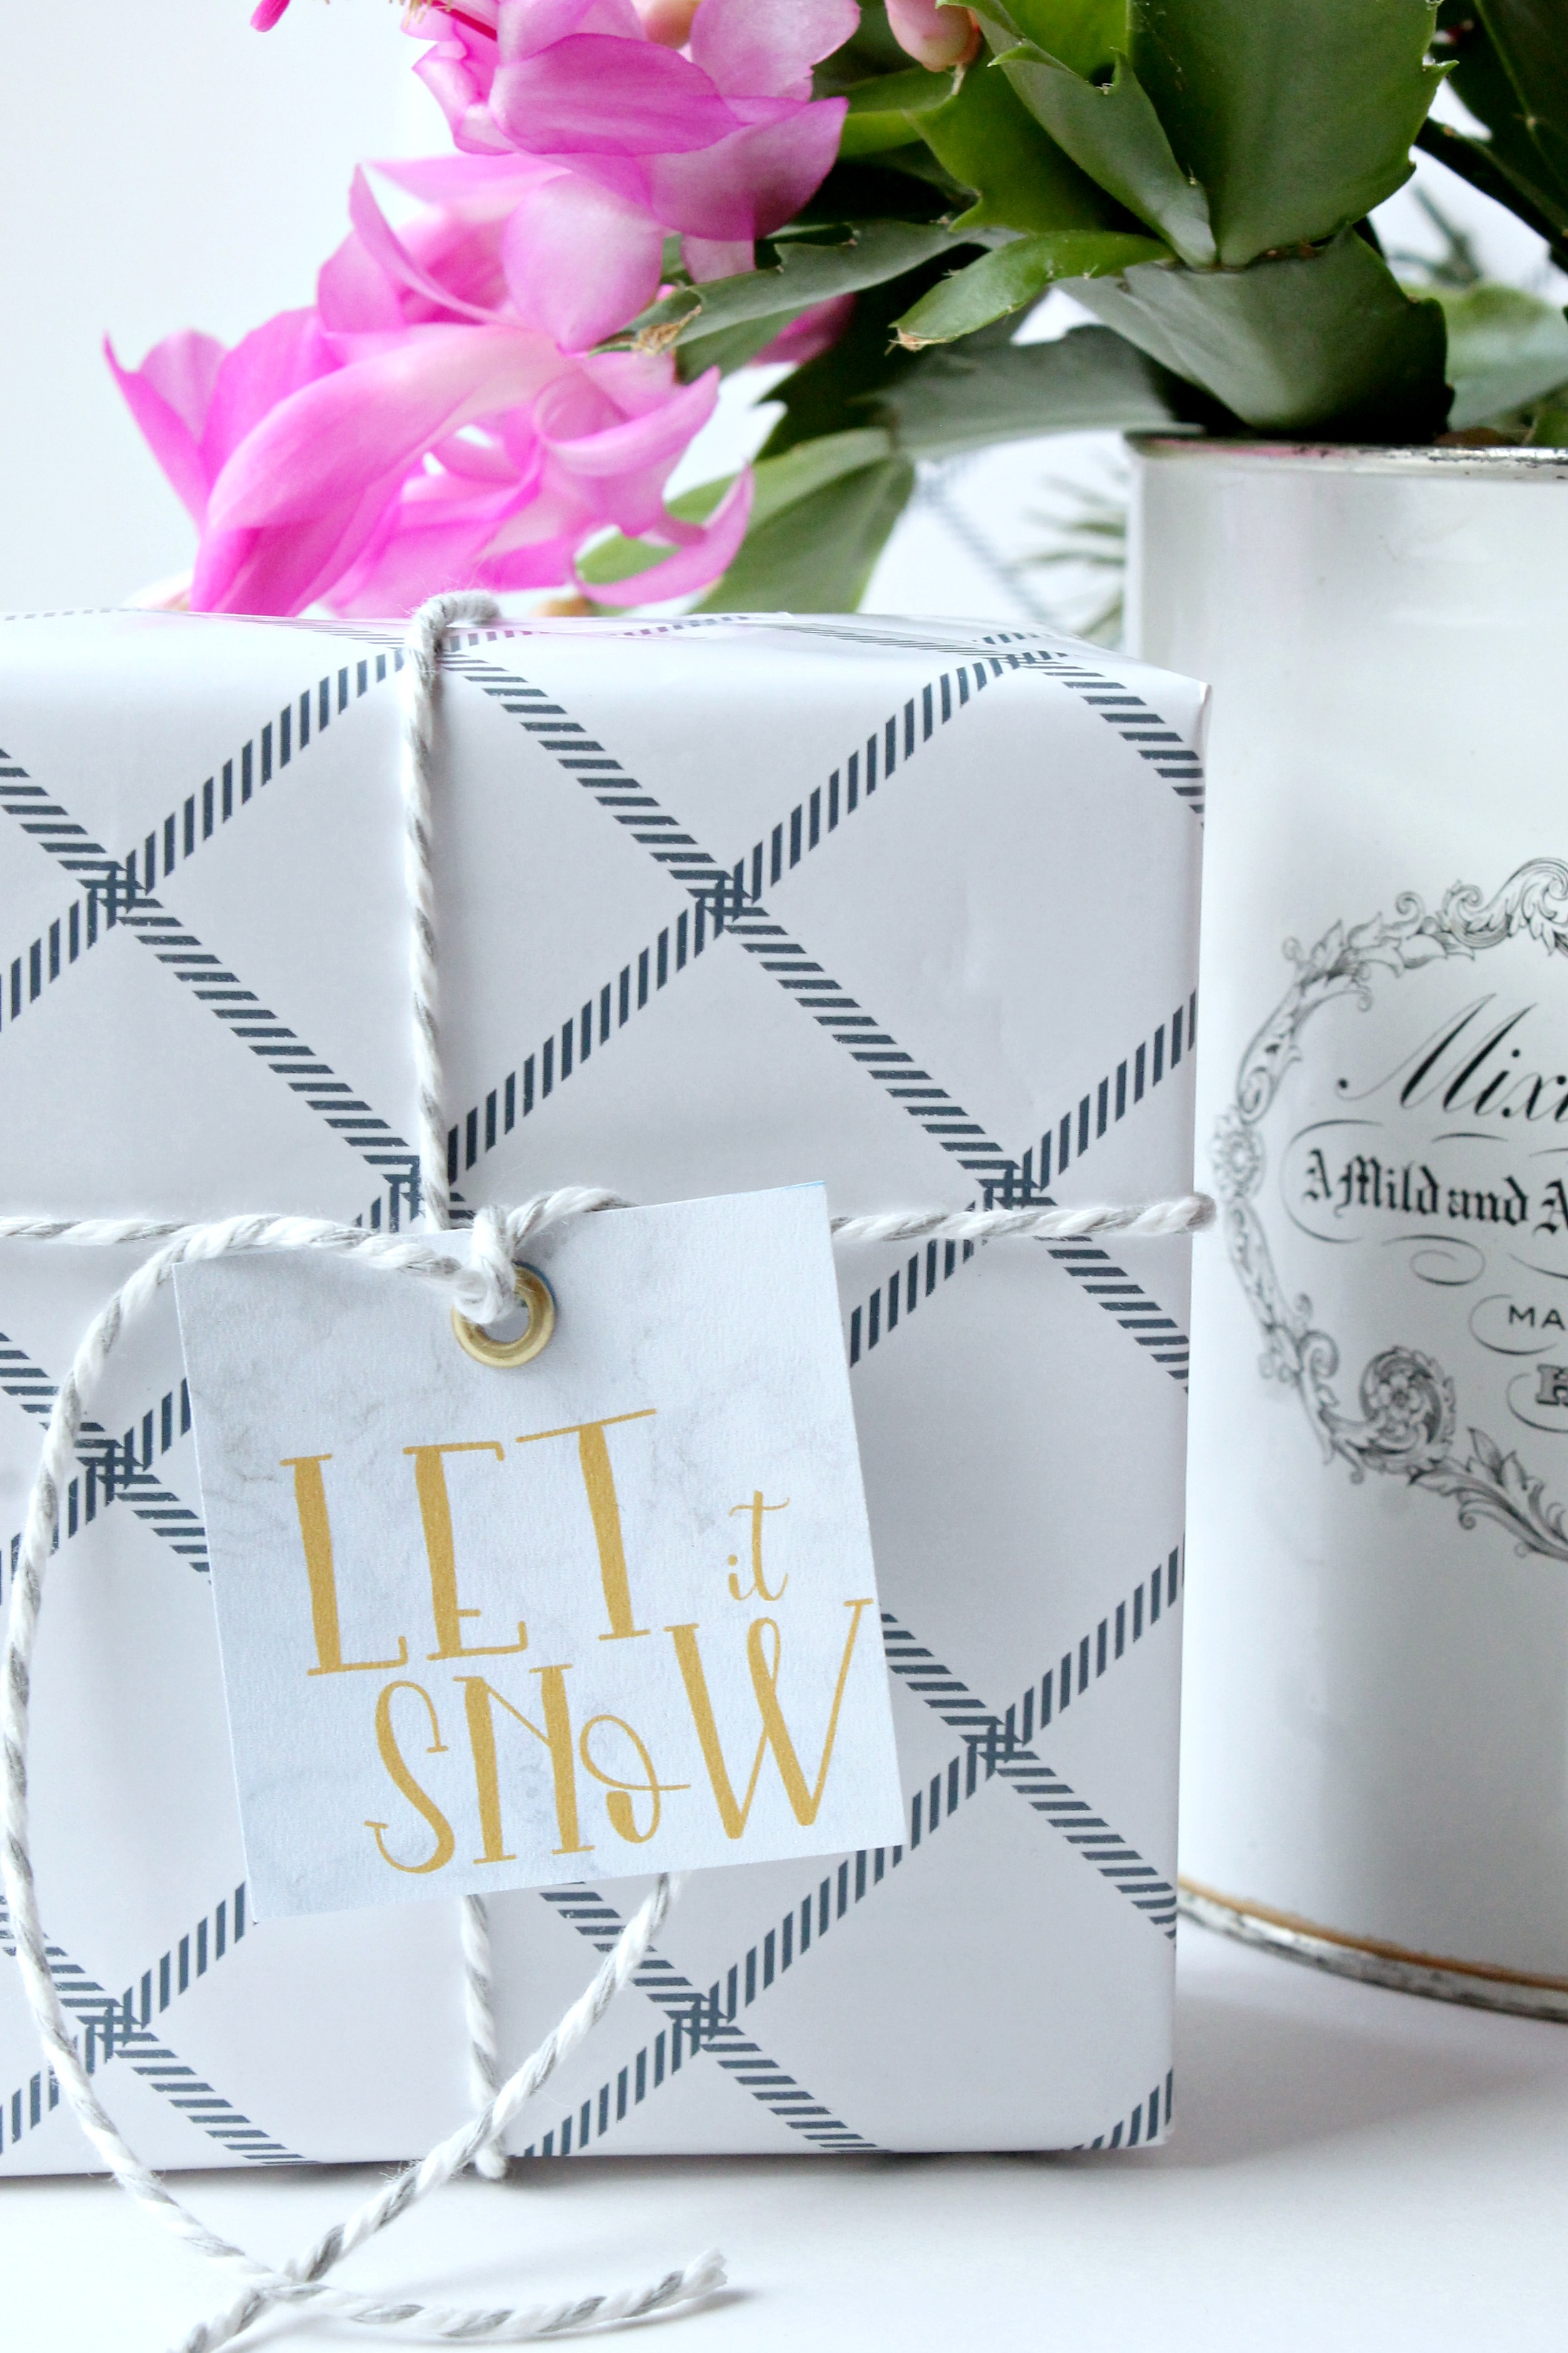 Let it snow printable gift tag